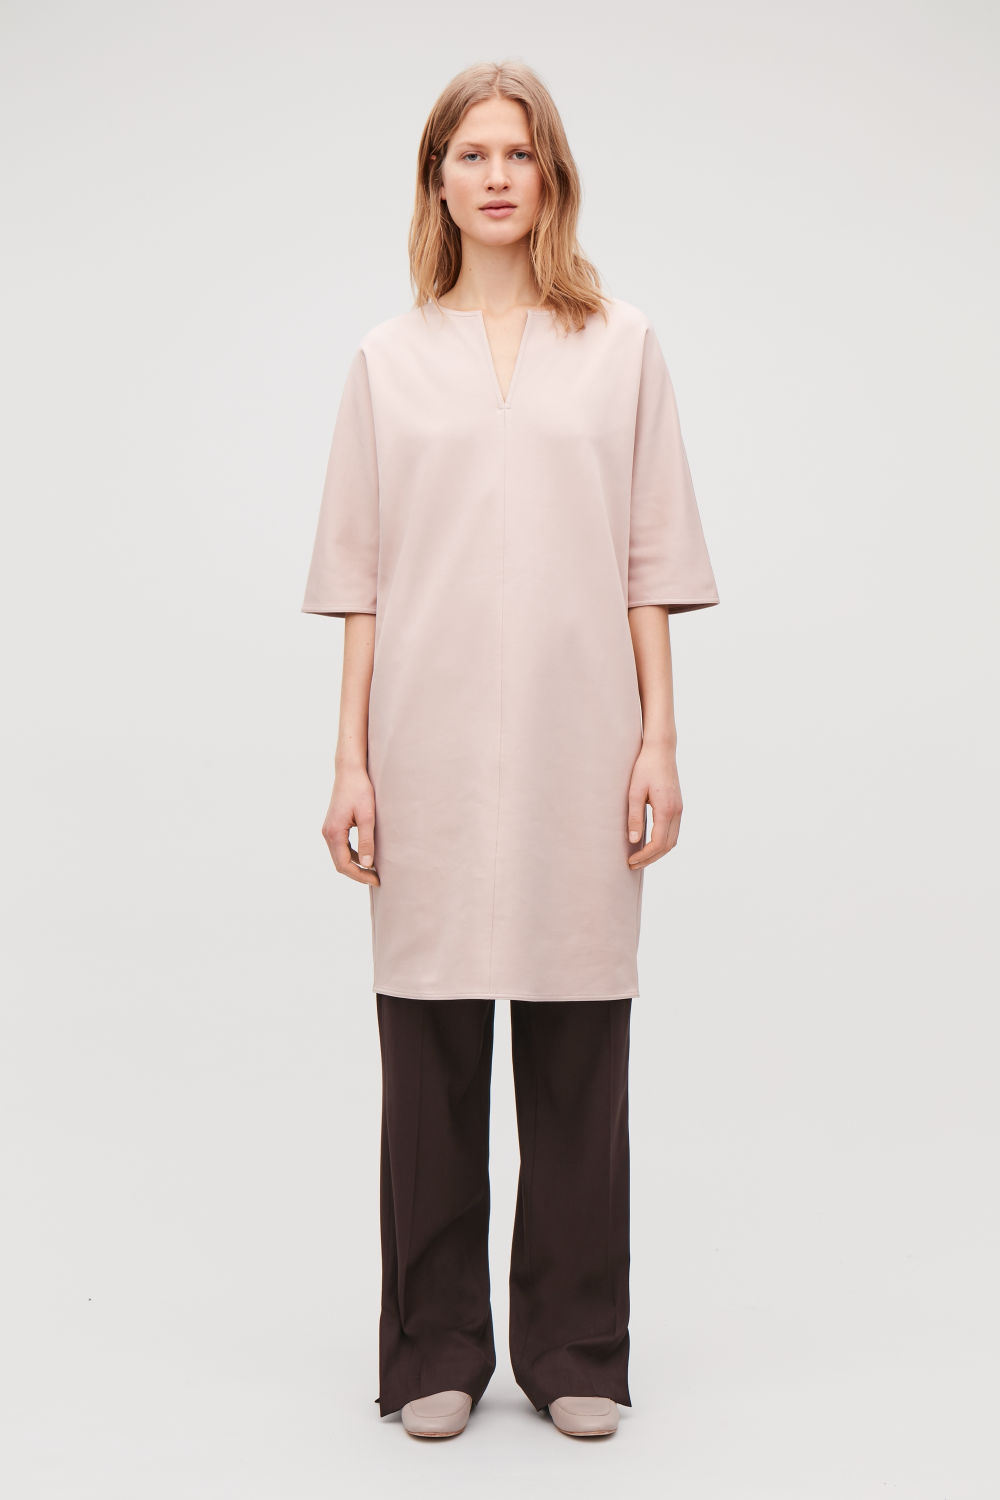 BATWING-SLEEVED JERSEY DRESS